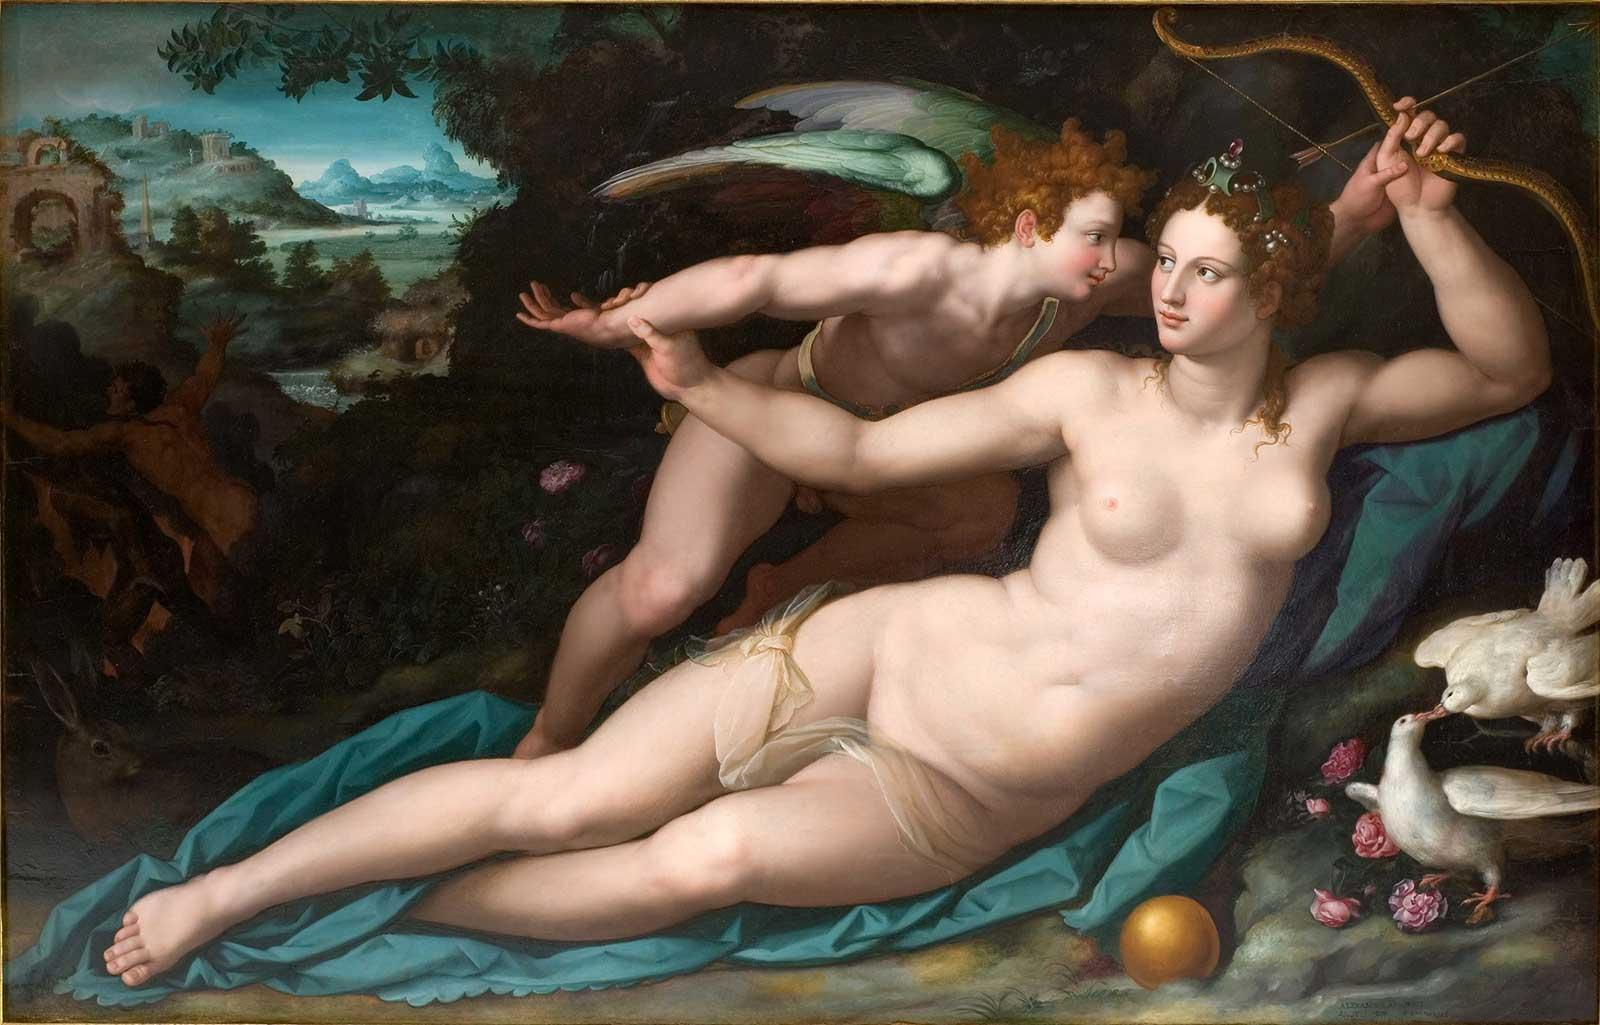 Venus and Amor, 1570s, Alessandro Allori.